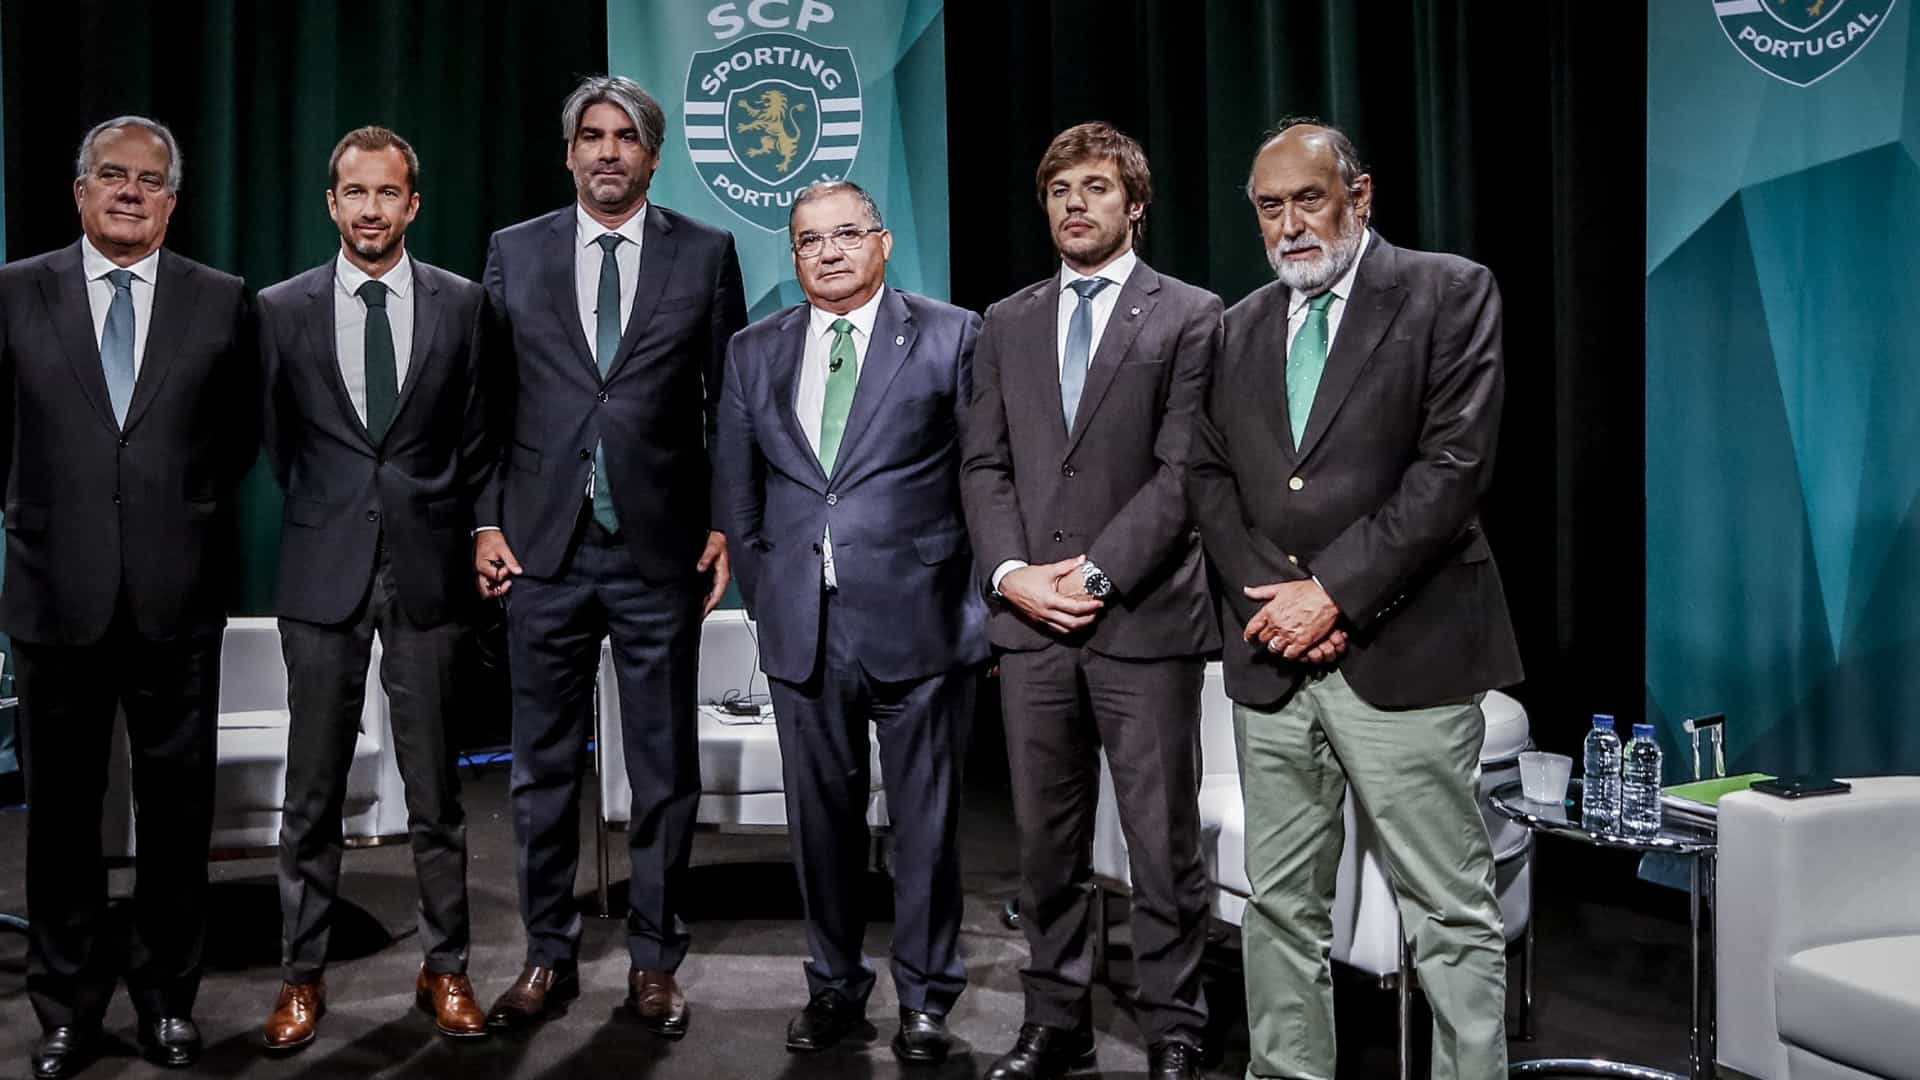 Chegou o dia D no Sporting: Os candidatos, os trunfos e as promessas